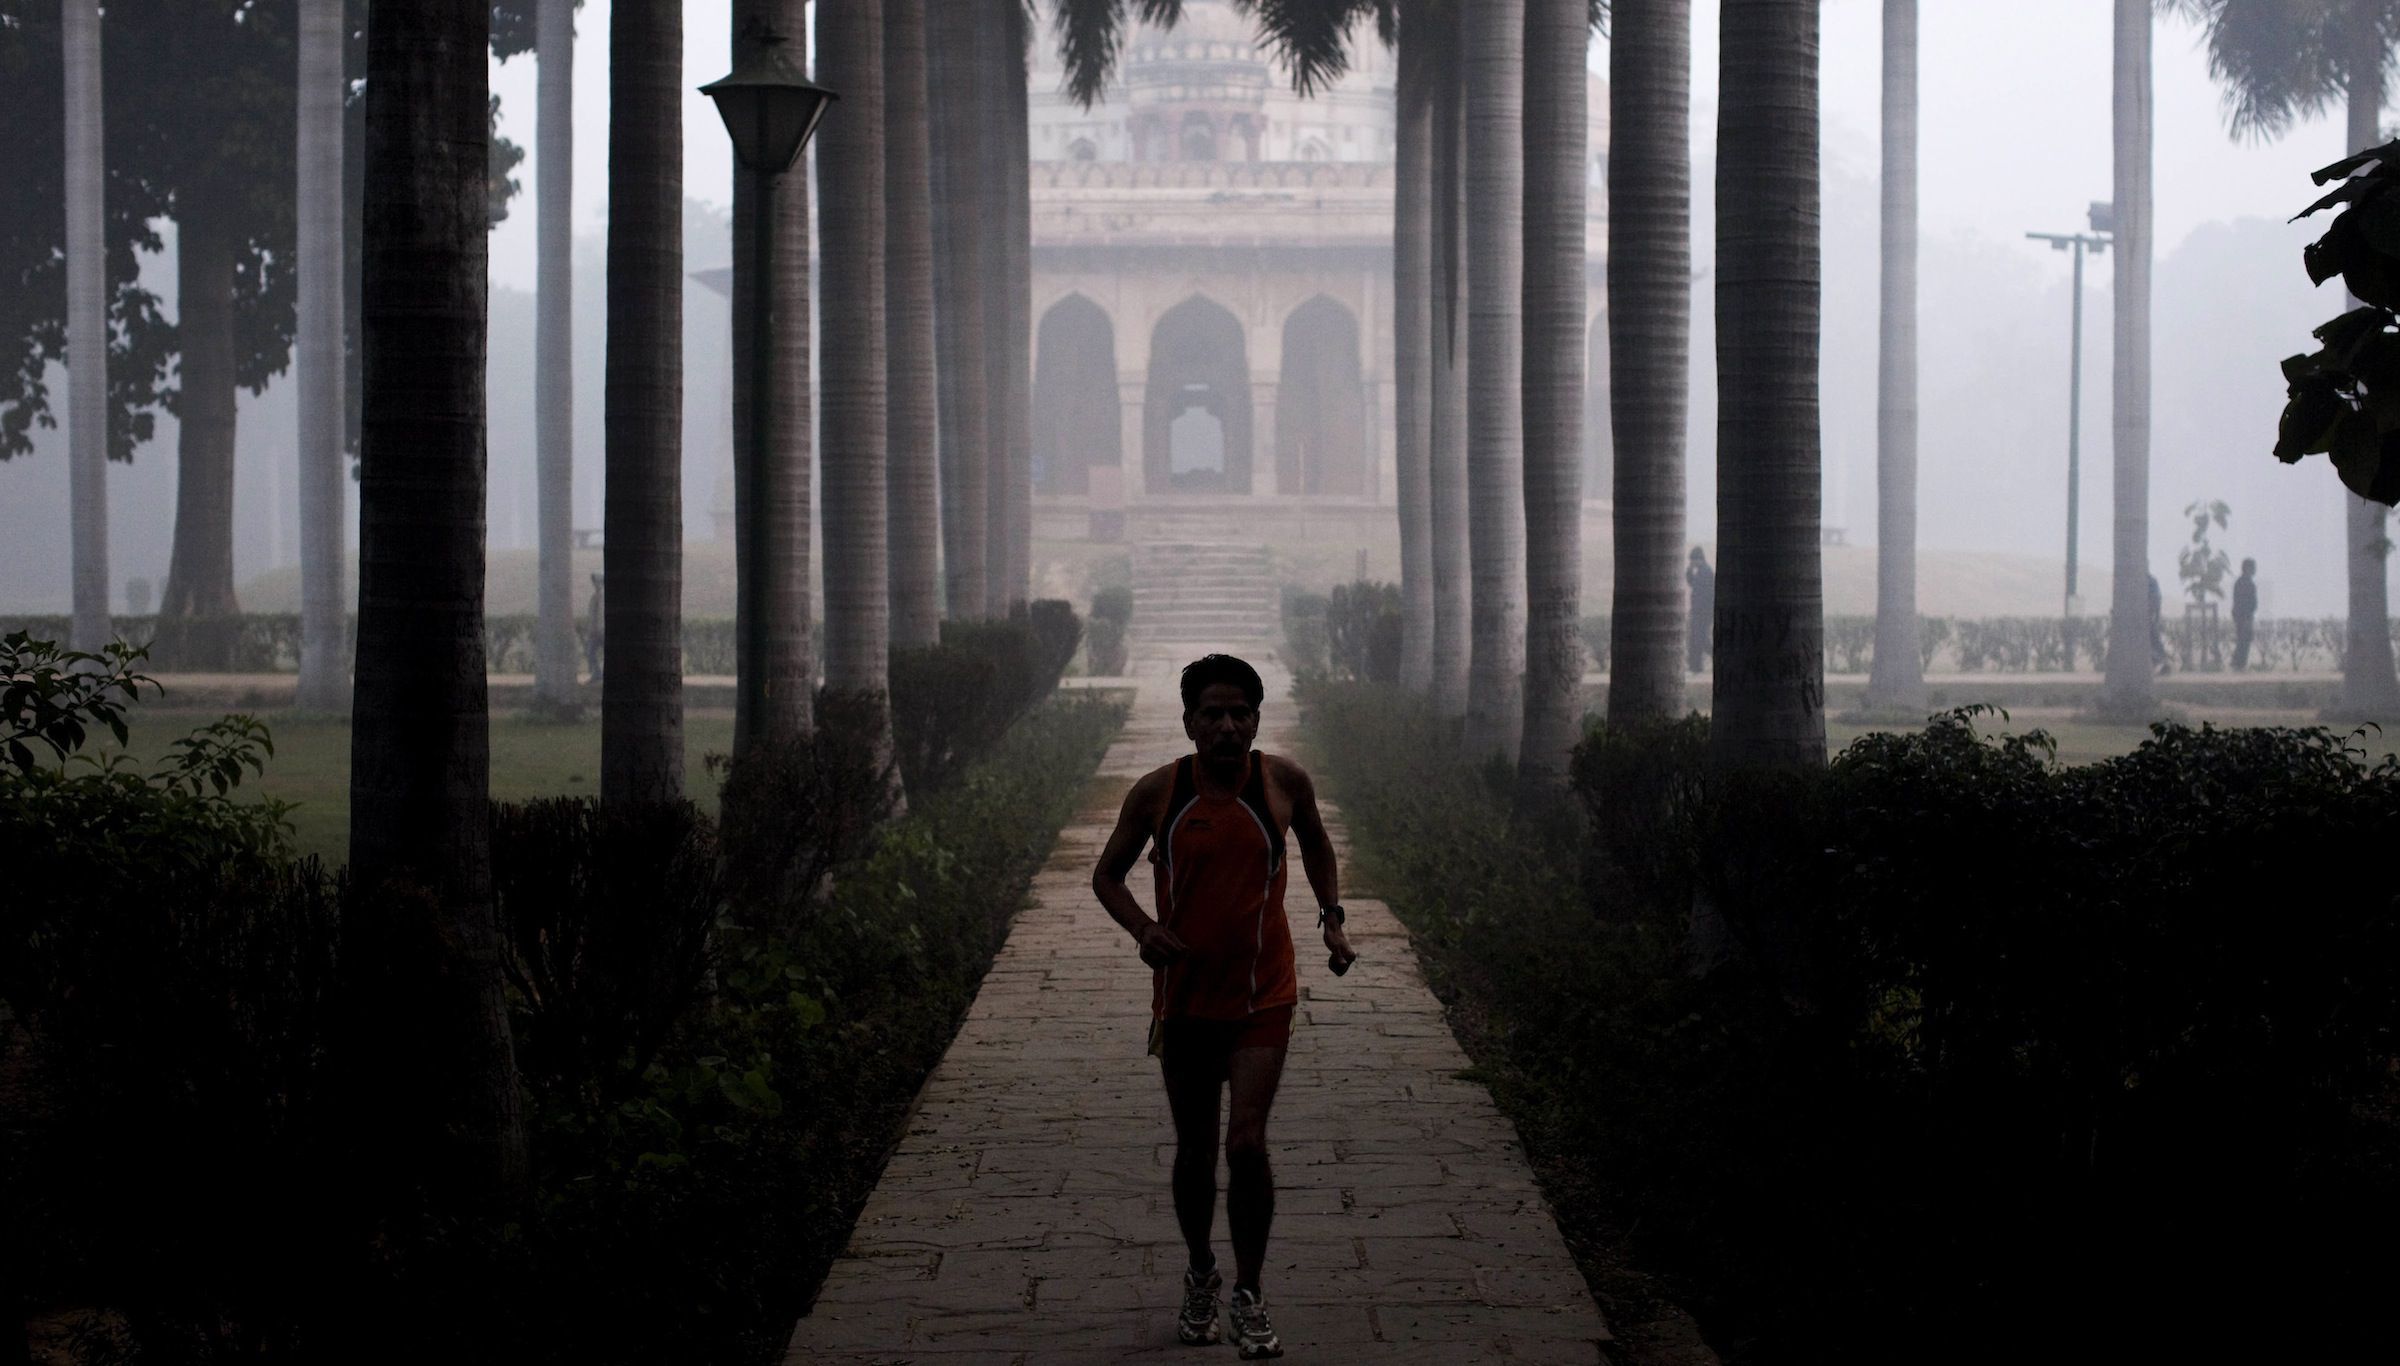 An Indian man runs in the fog at Lodhi Gardens in New Delhi, India, Friday, Dec. 23, 2011. Though India is famous for its brutally hot summers, temperatures fall sharply for a few weeks in December and January. (AP Photo/Kevin Frayer)